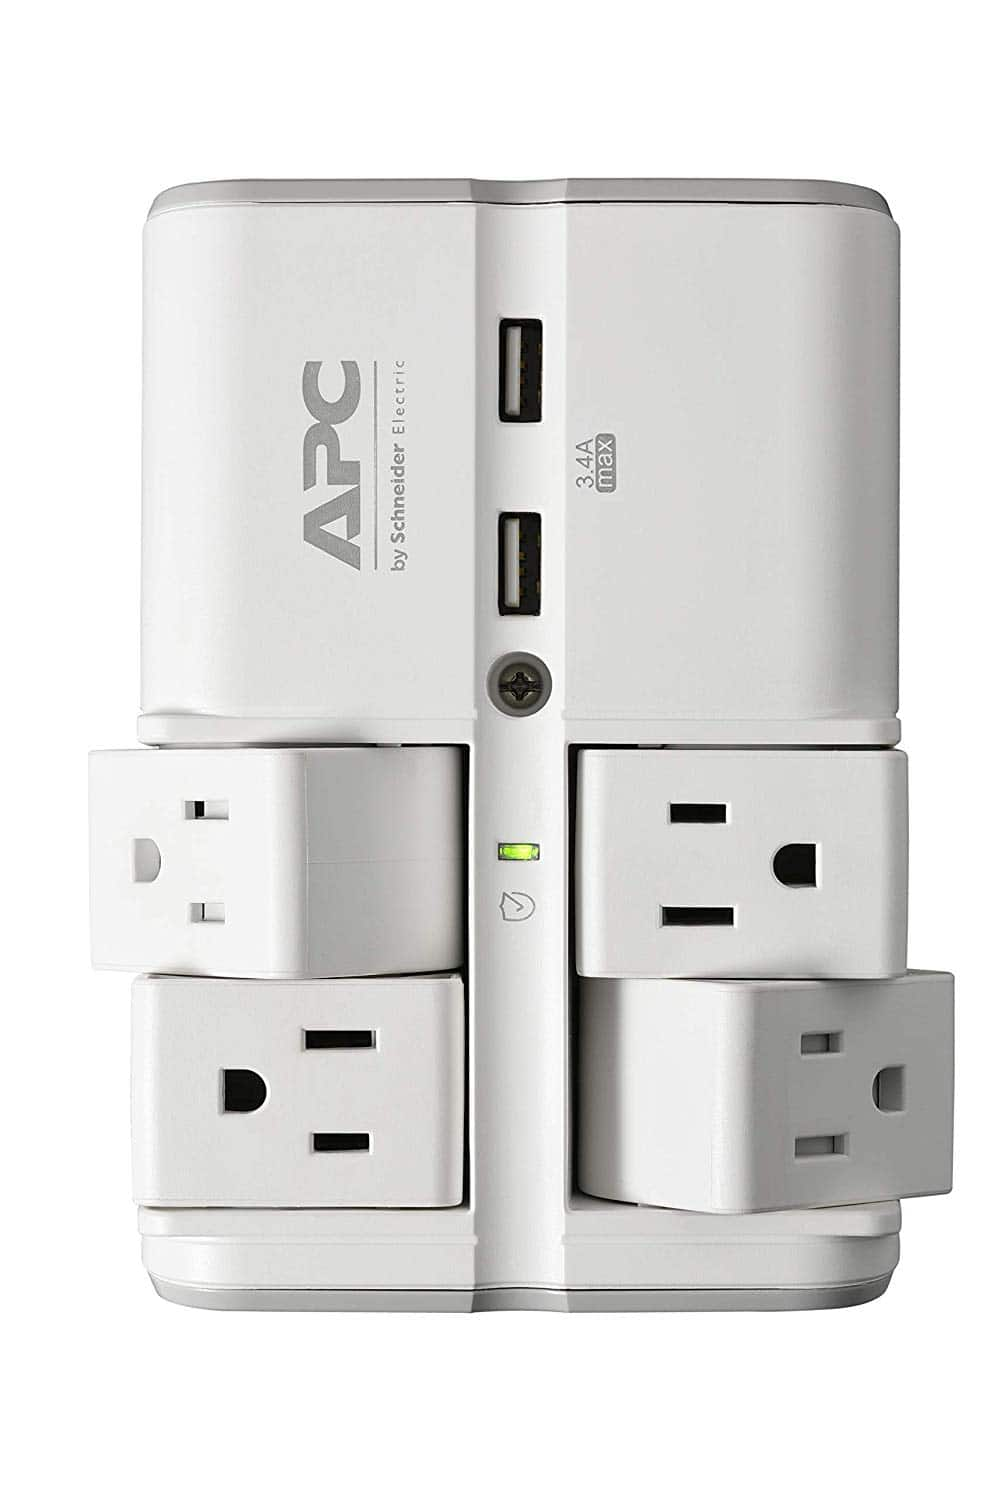 APC Wall Pivot-Plug Surge Protector, 4 Rotating Outlets, 1080 Joule Surge Protector with Two USB Charging Ports, SurgeArrest Essential (PE4WRU3) $17